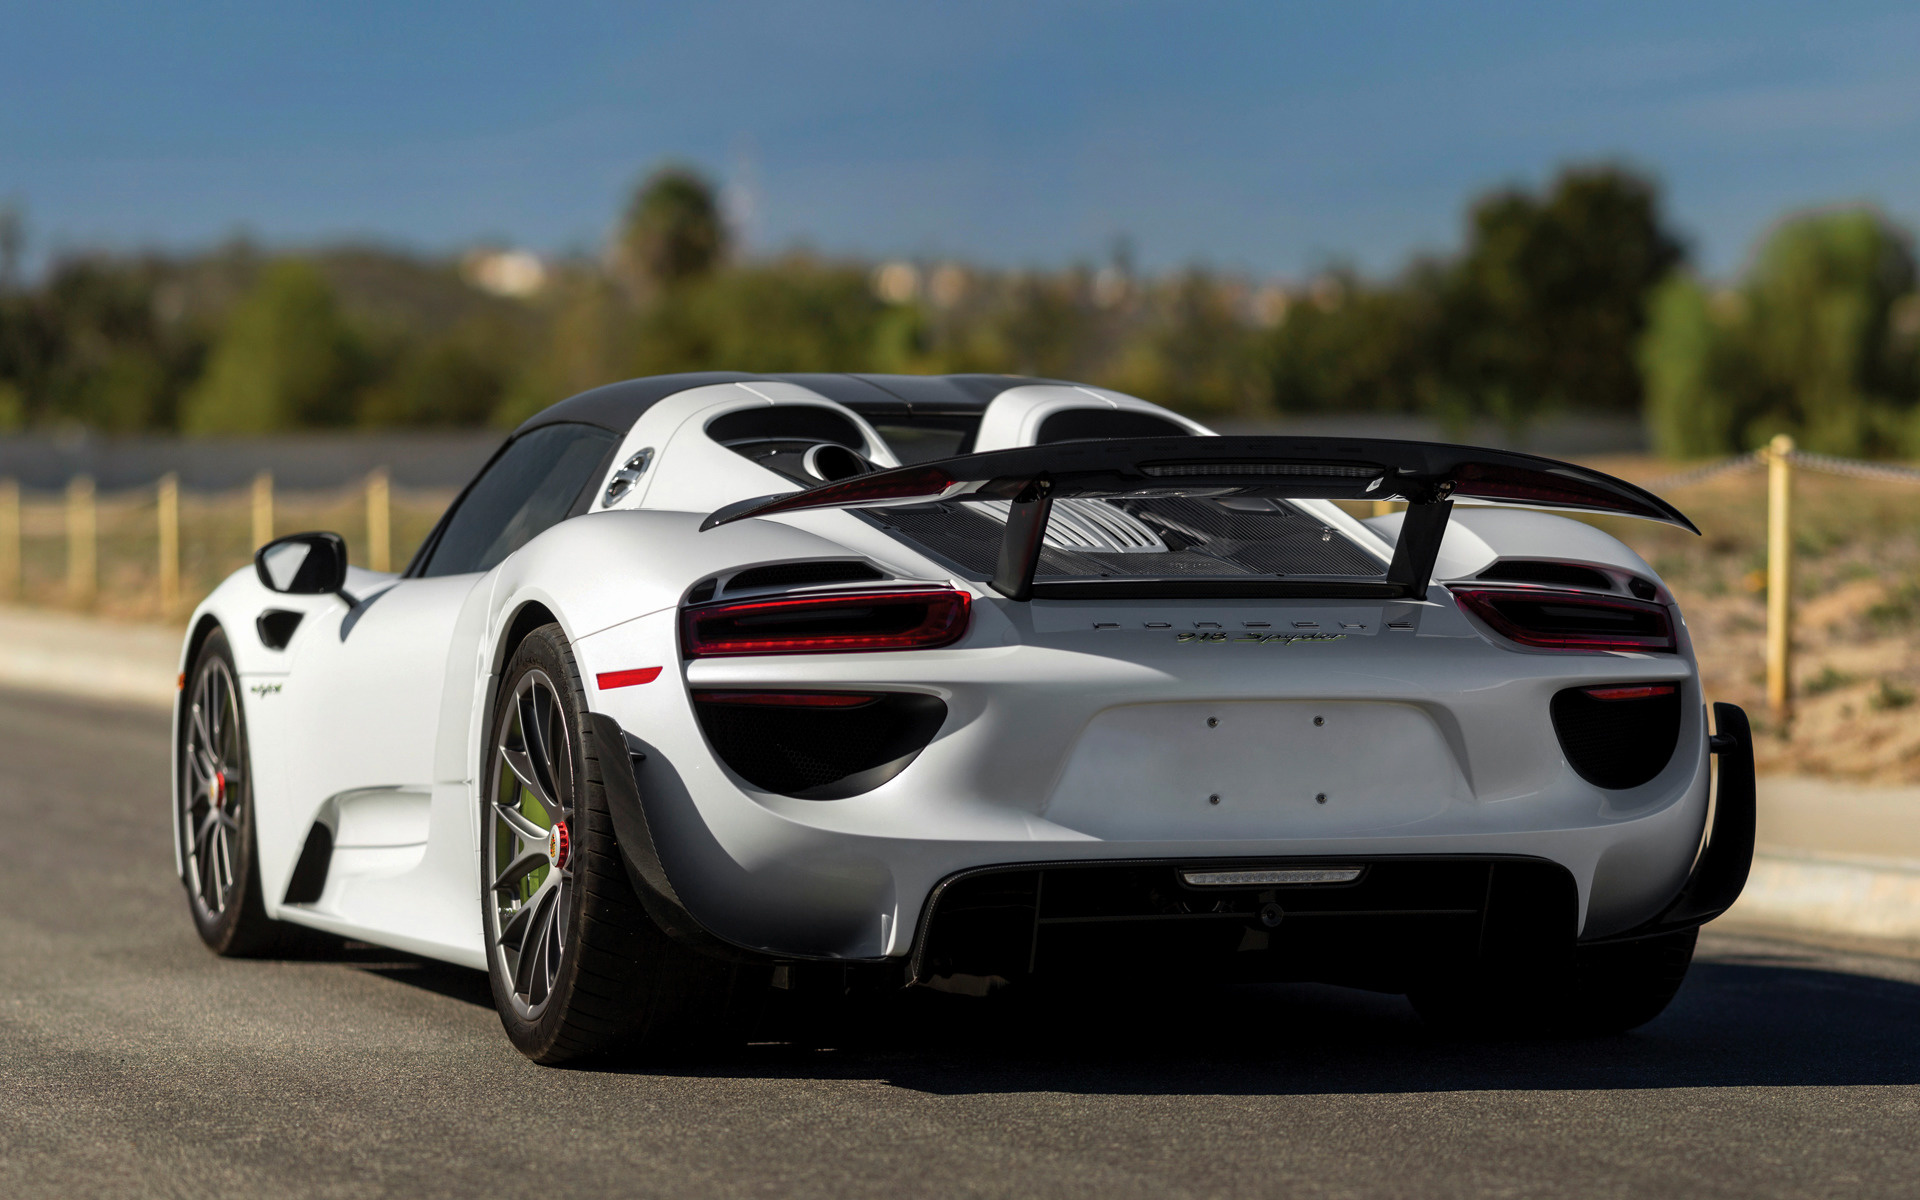 porsche 918 spyder weissach package 2014 us wallpapers and hd images car. Black Bedroom Furniture Sets. Home Design Ideas